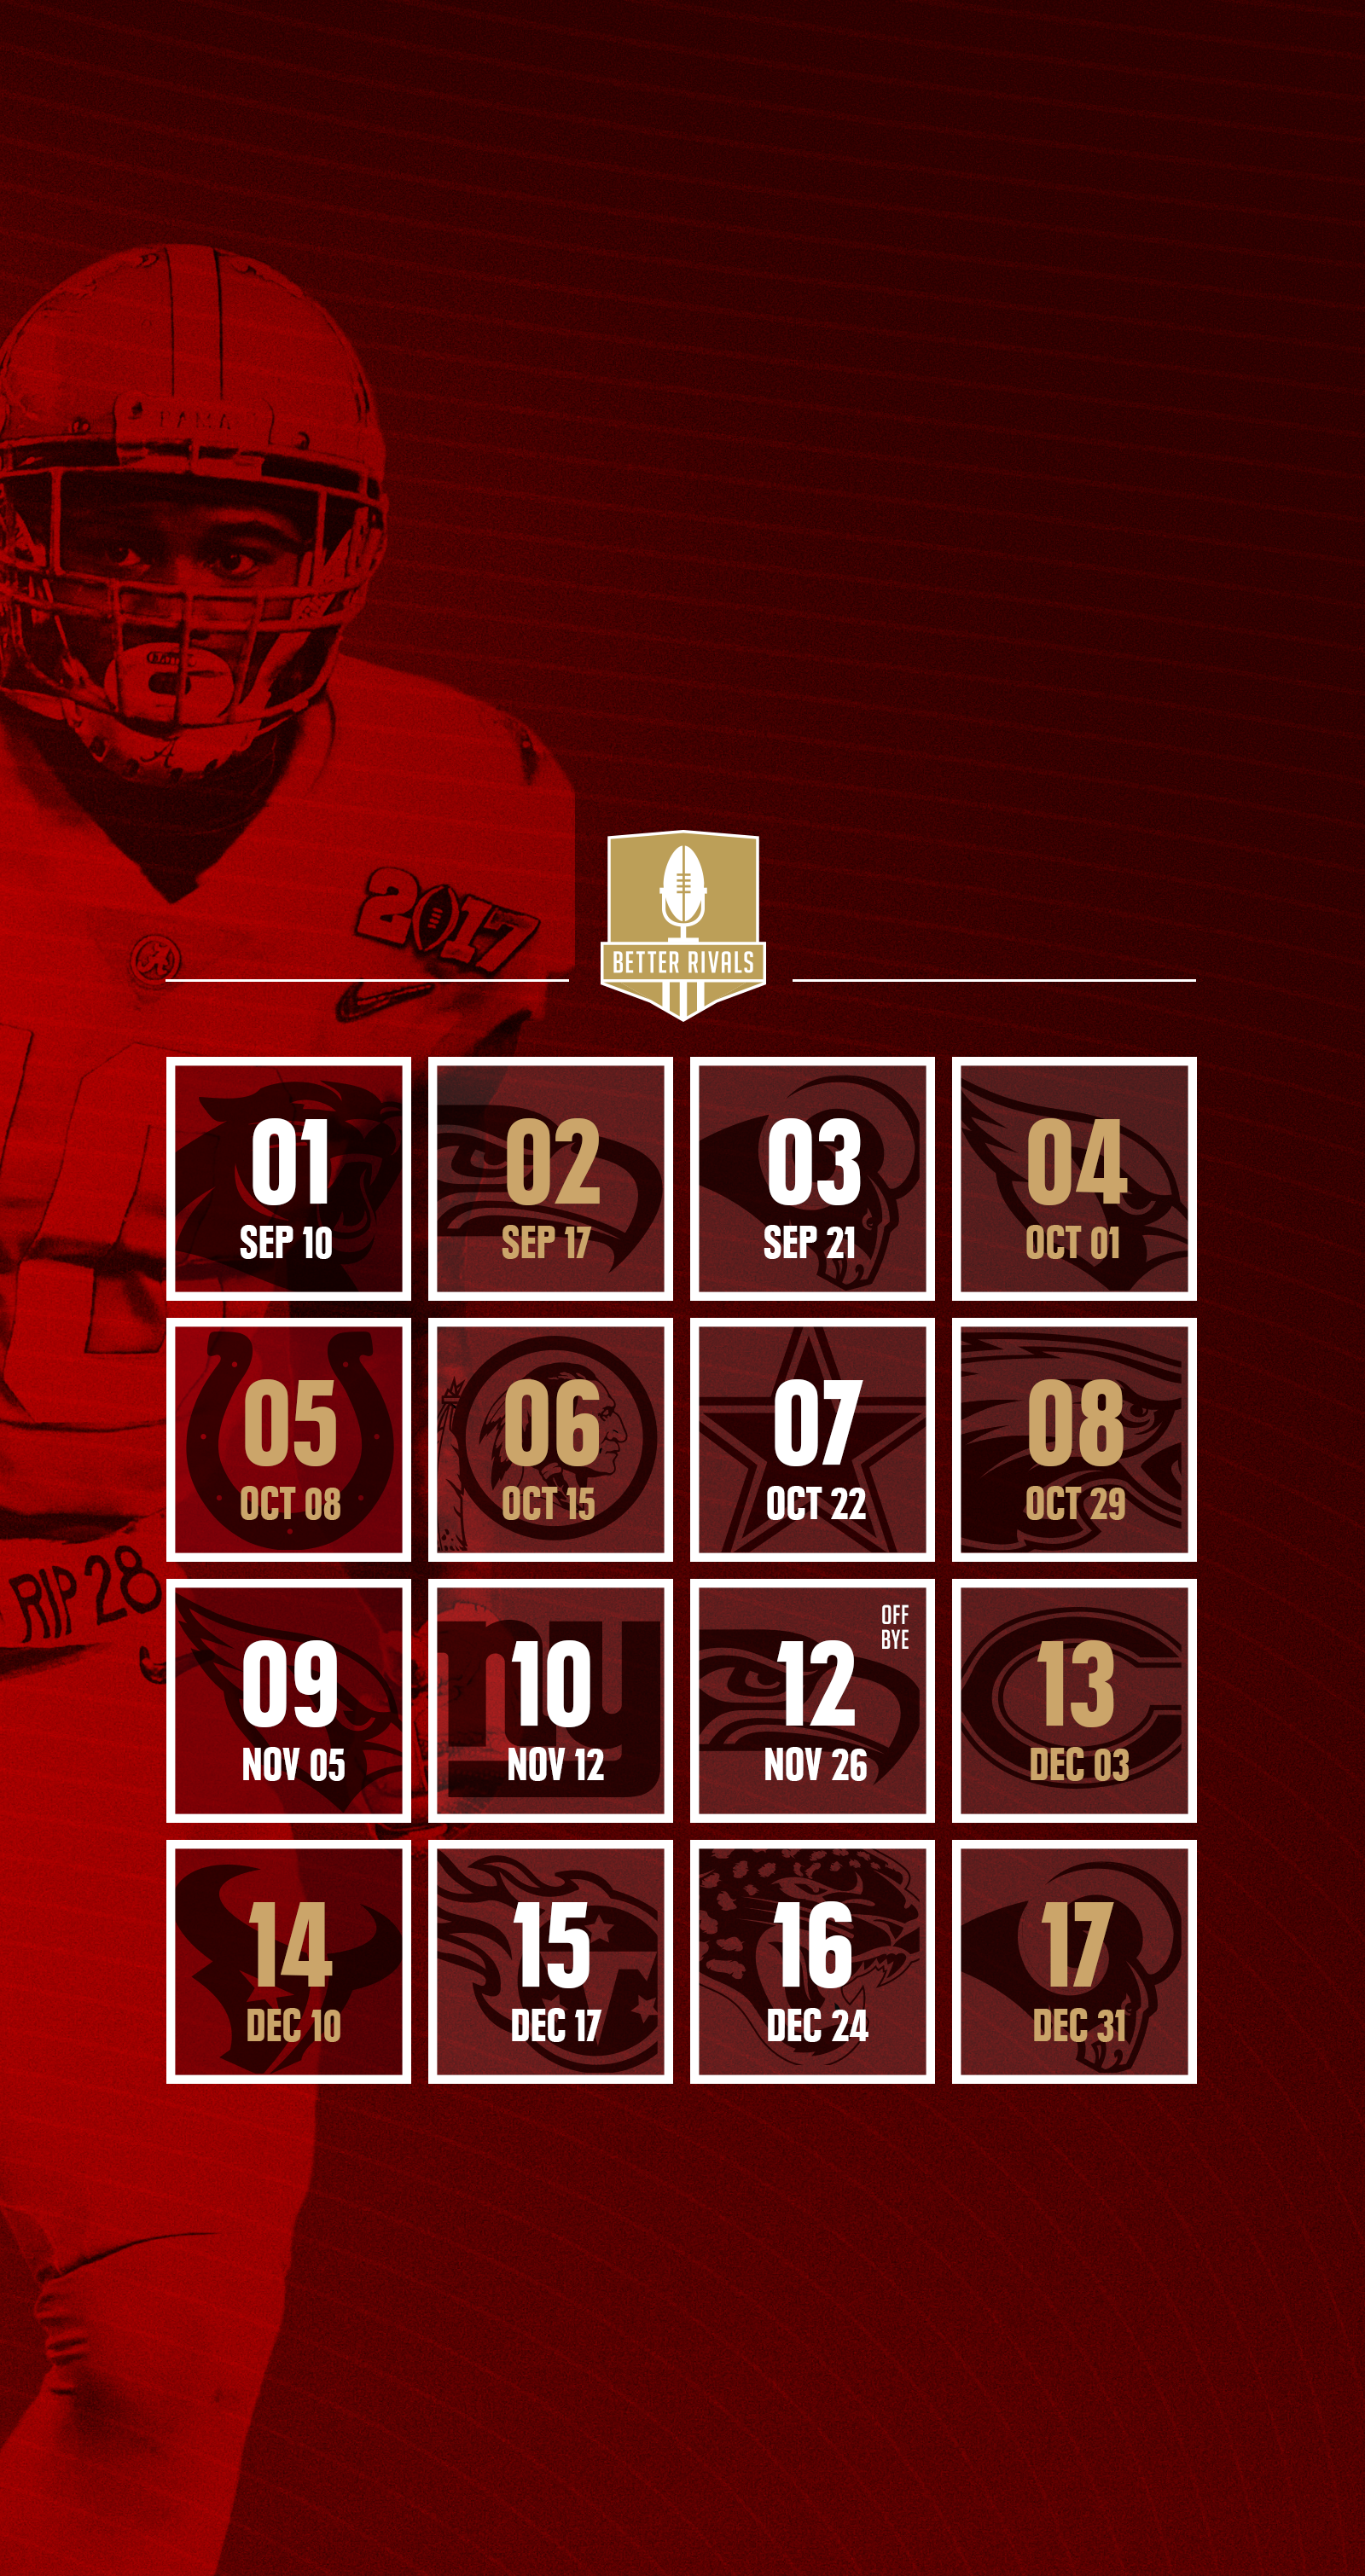 49ers 2017 schedule wallpapers for iphone android desktop 1 of 7 voltagebd Images